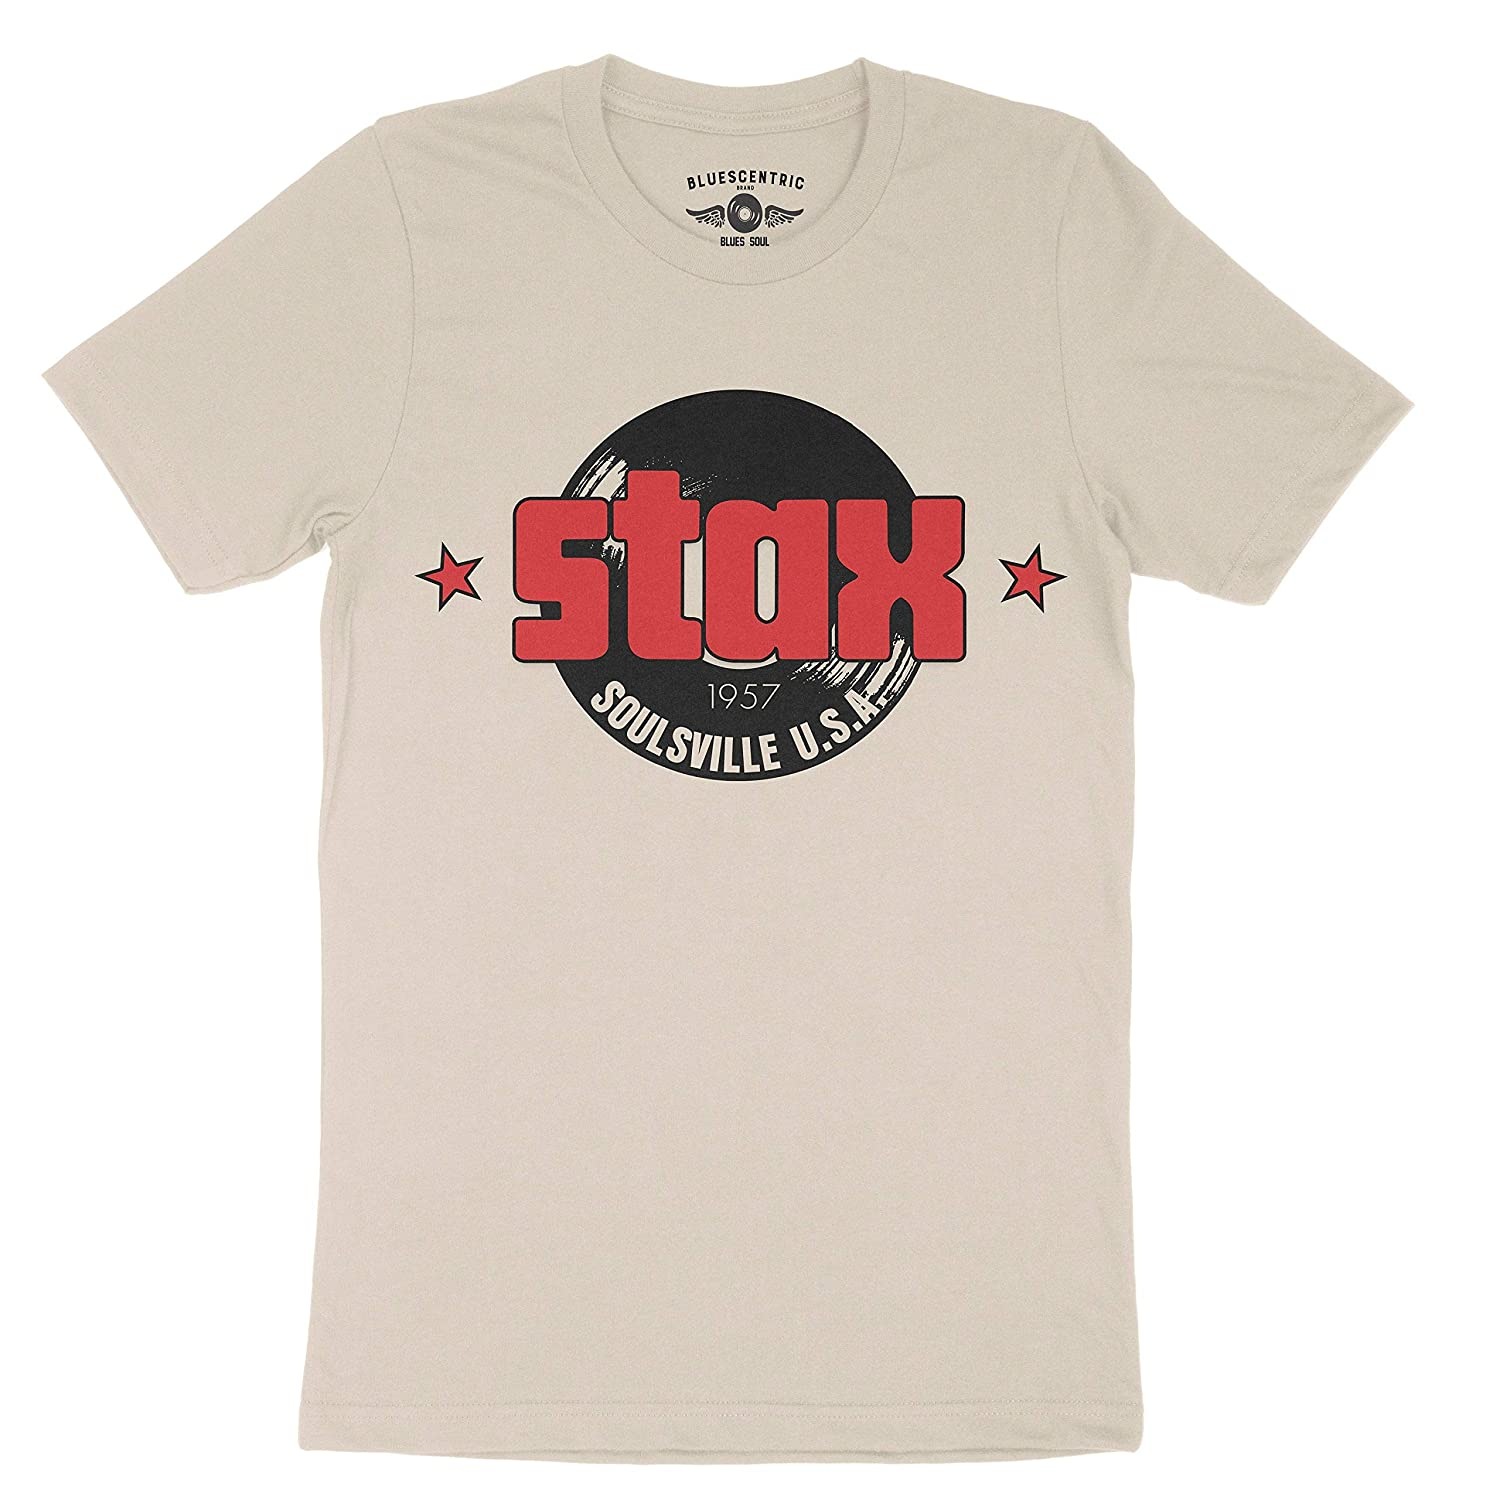 Stax Records Soulsville T-shirt - () Vintage Style Lightweight